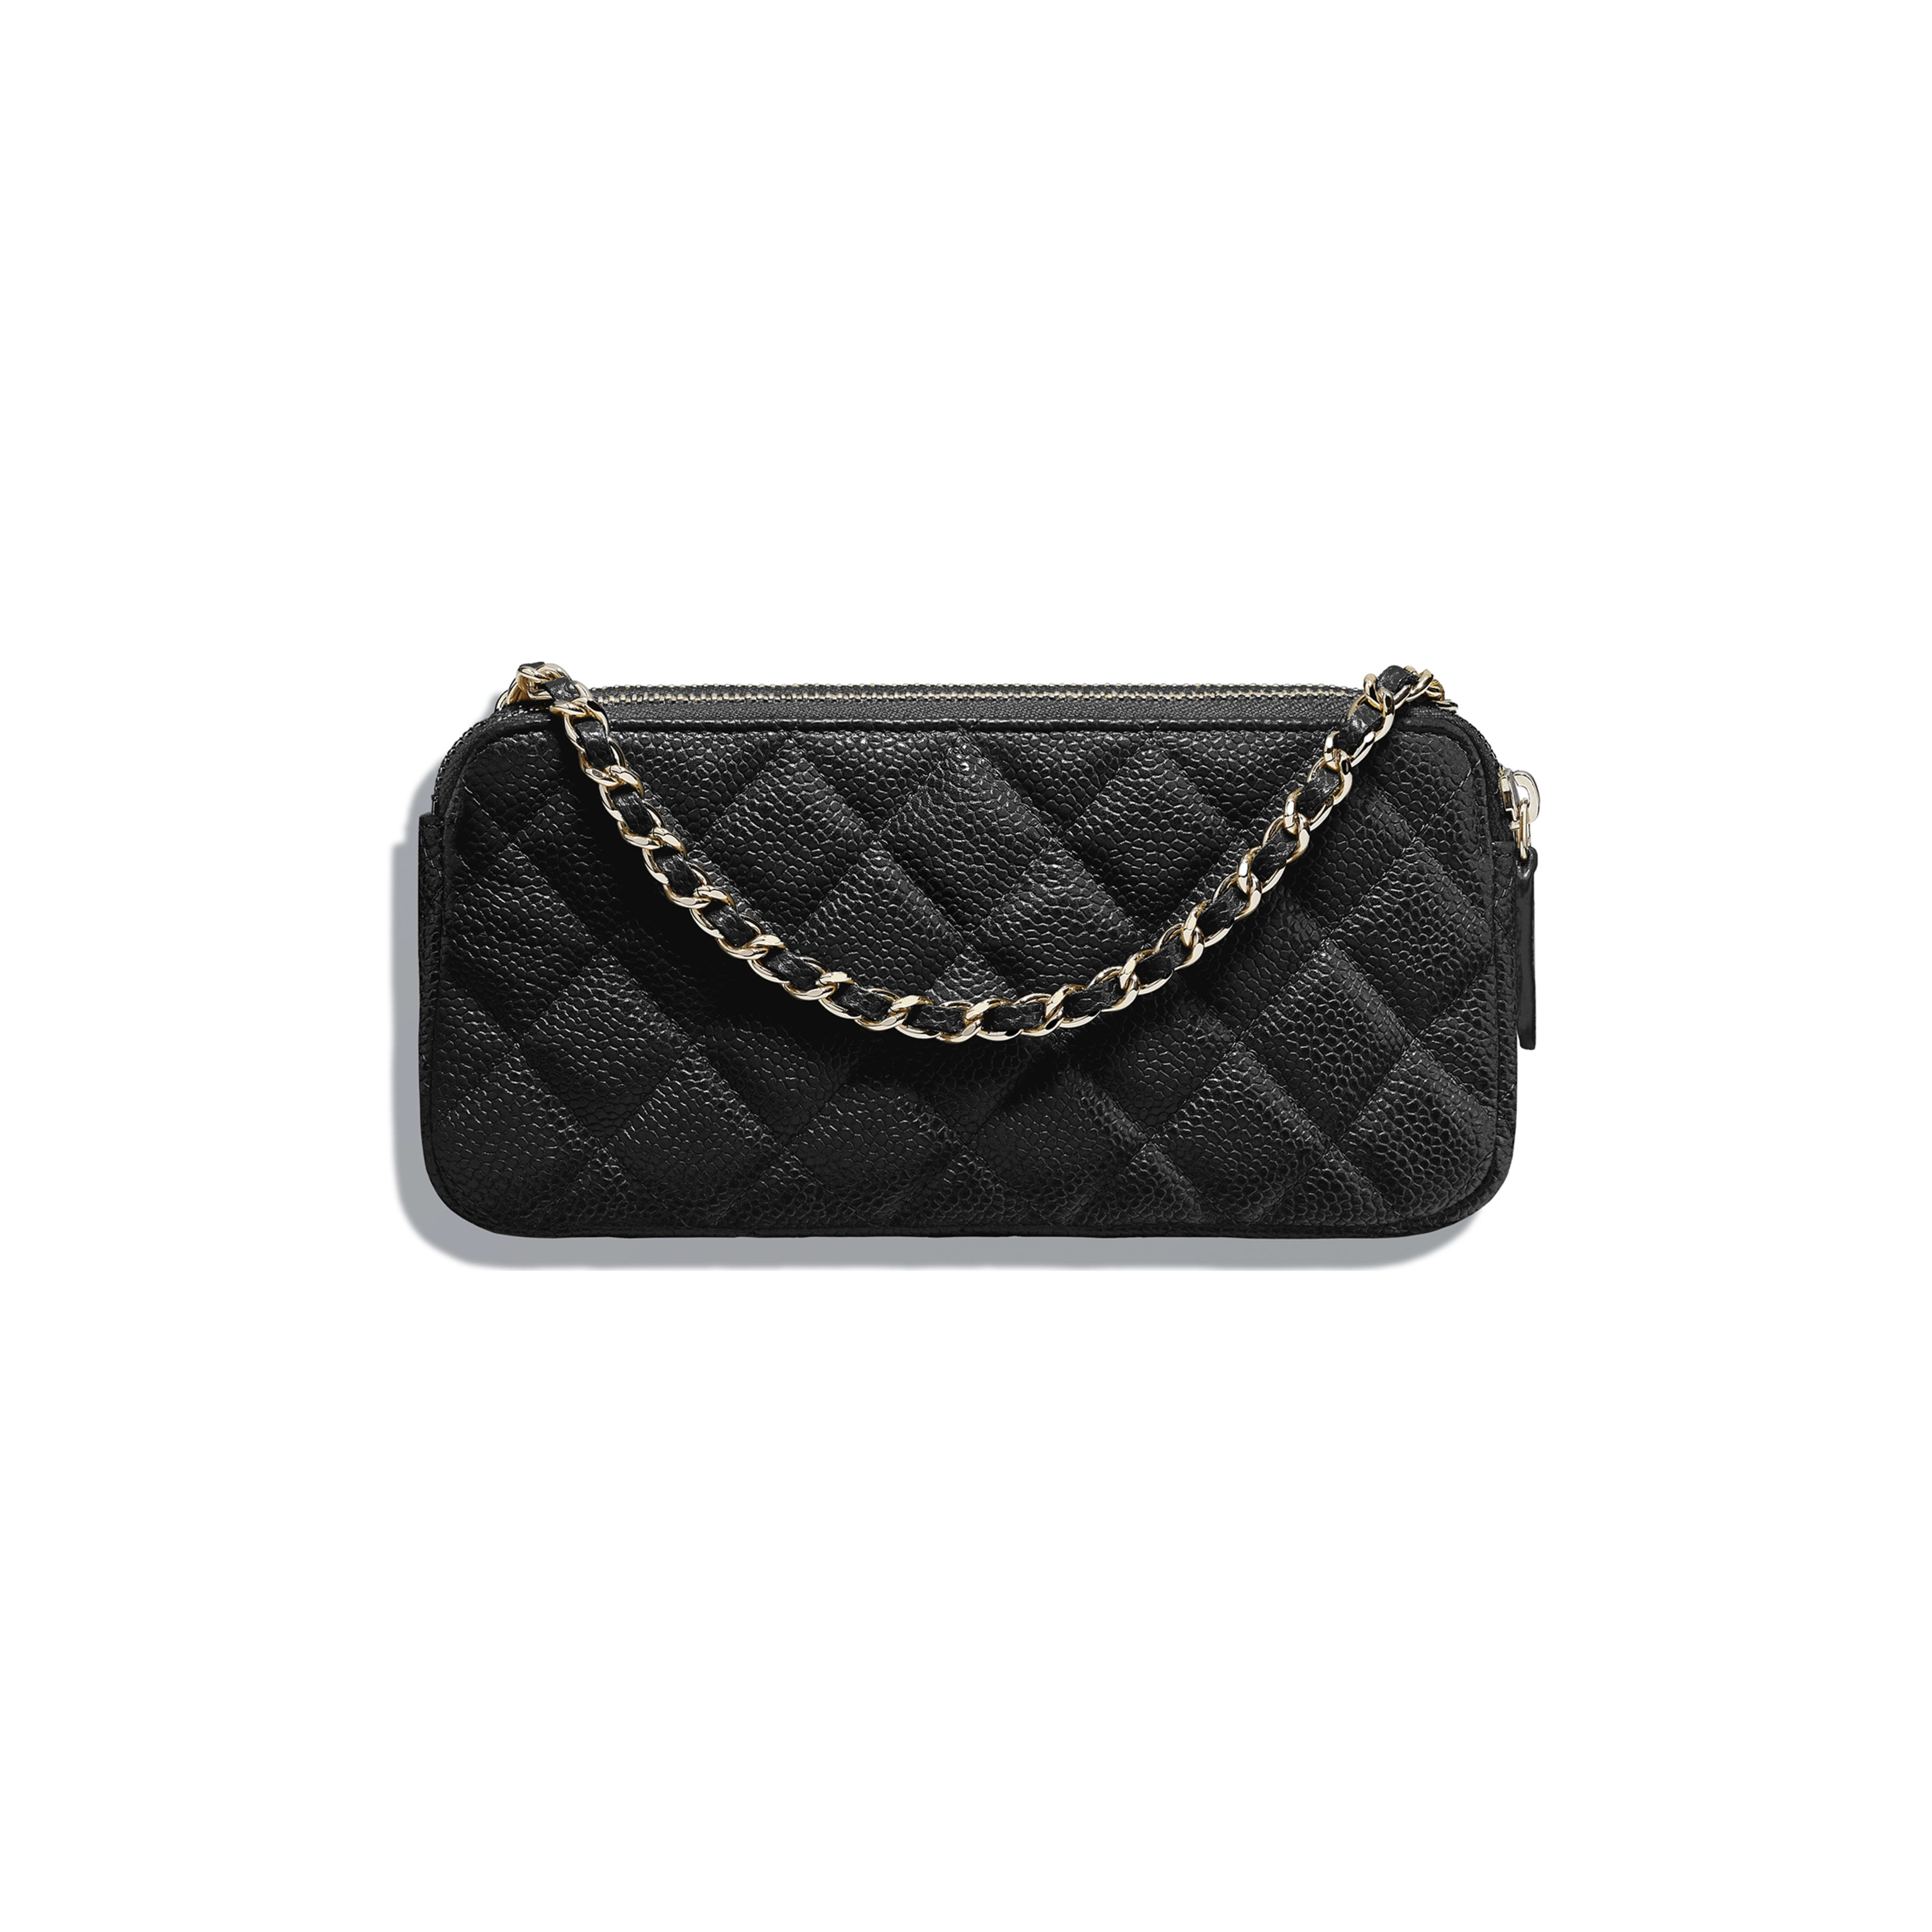 Classic Clutch with Chain - Black - Grained Calfskin & Gold-Tone Metal - Alternative view - see full sized version